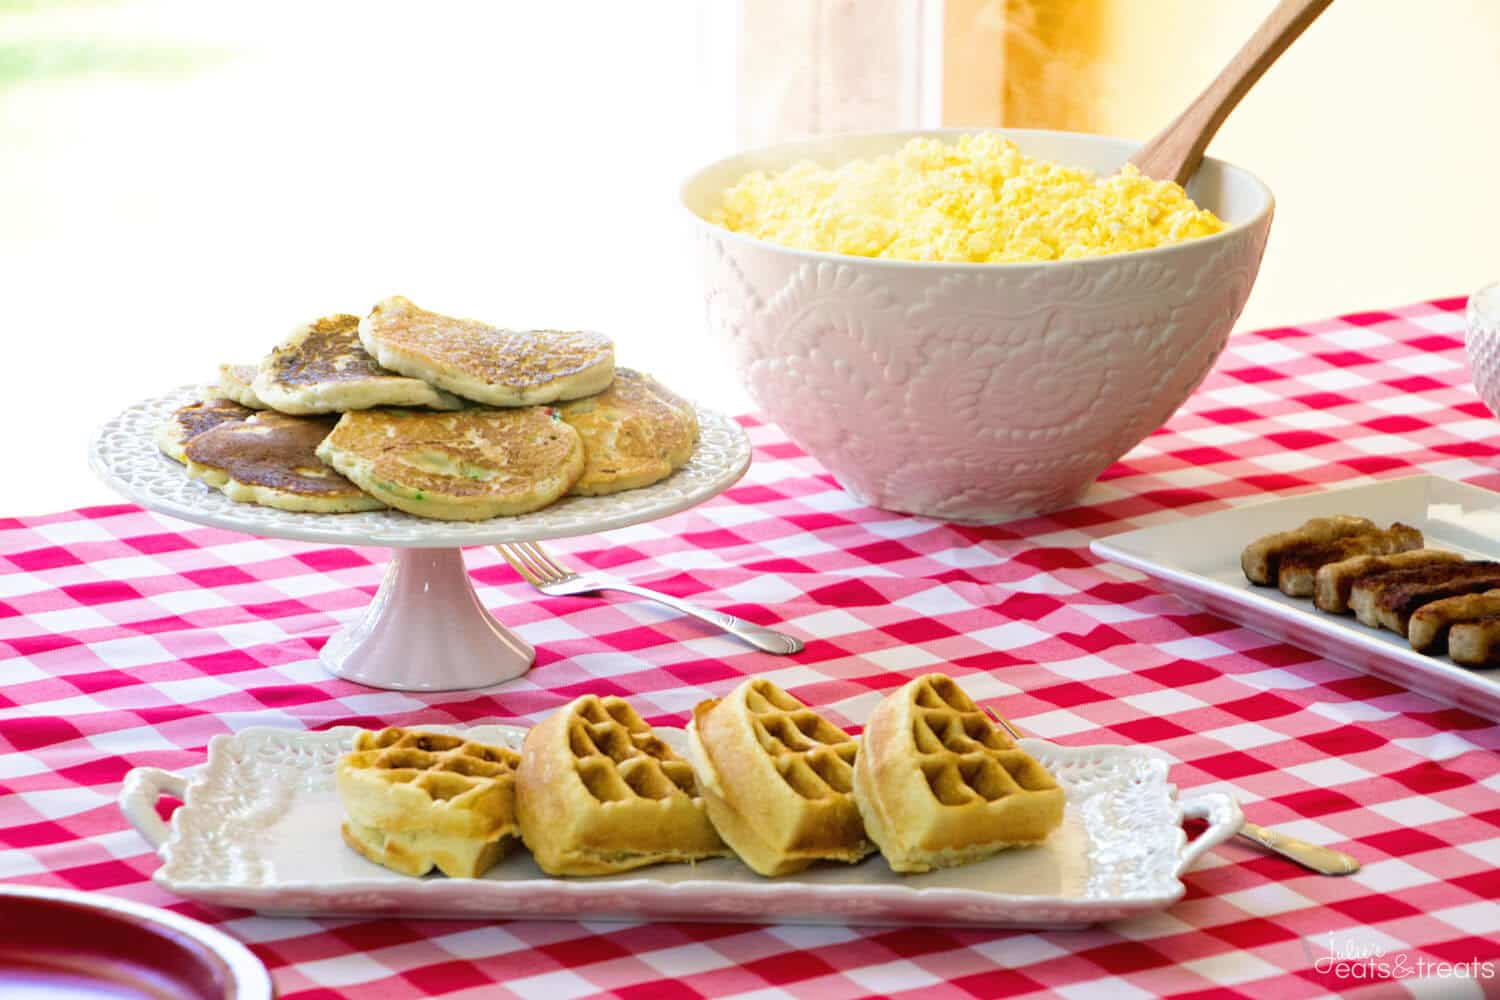 Breakfeast Pancake Bar Party ~ How to Throw You Own Breakfast Party Featuring Pancakes and Waffles! It's So Much Fun and So Easy!